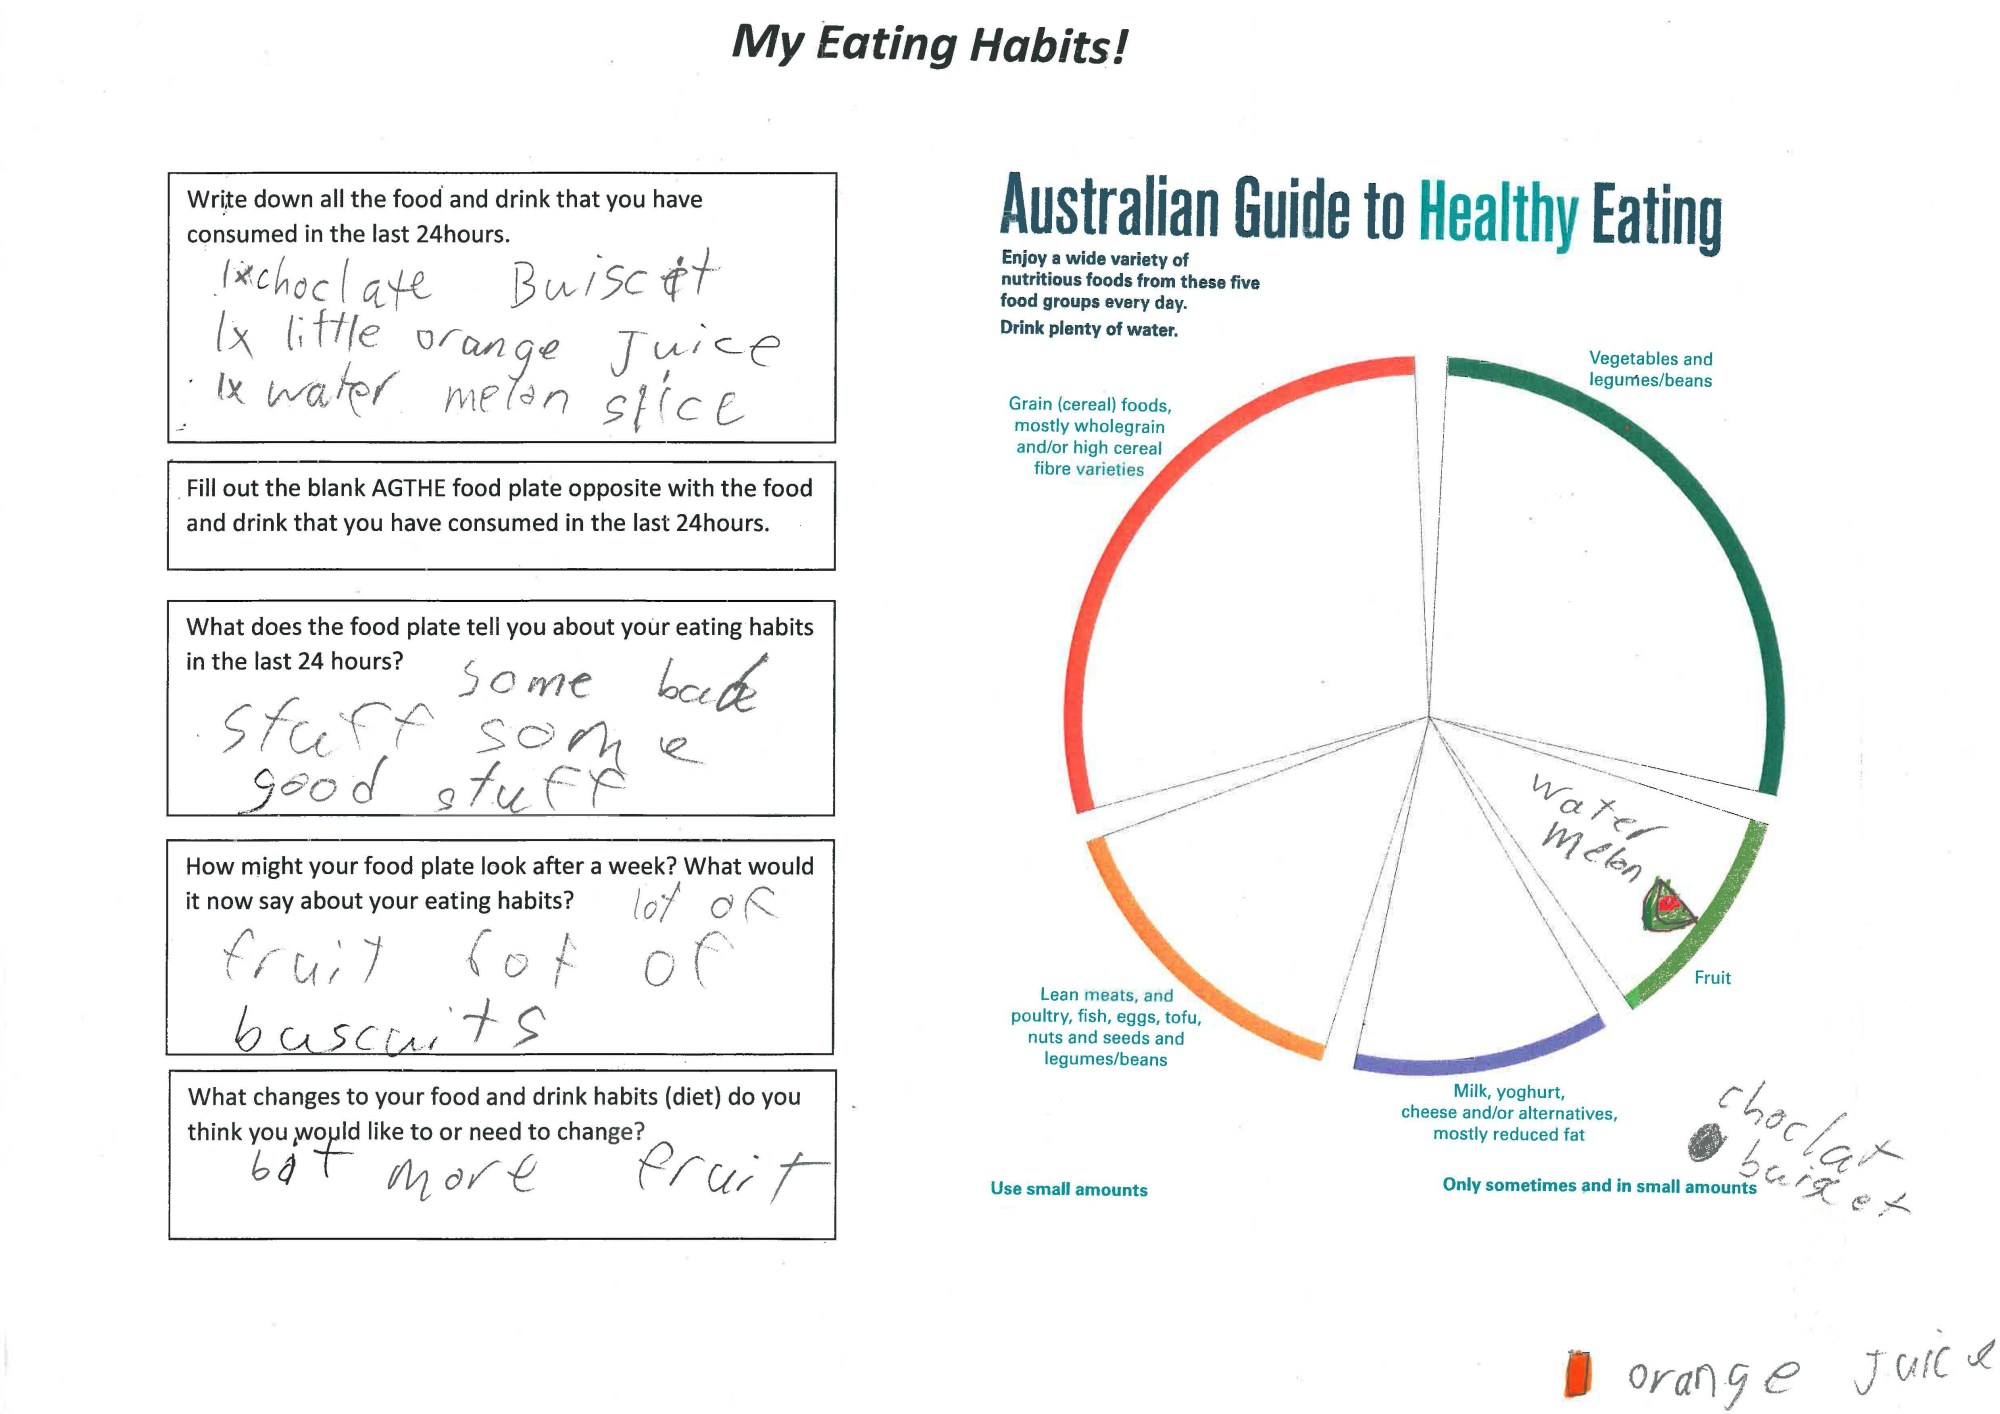 hight resolution of suggests an option for improving eating habits based on the australian guide to healthy eating